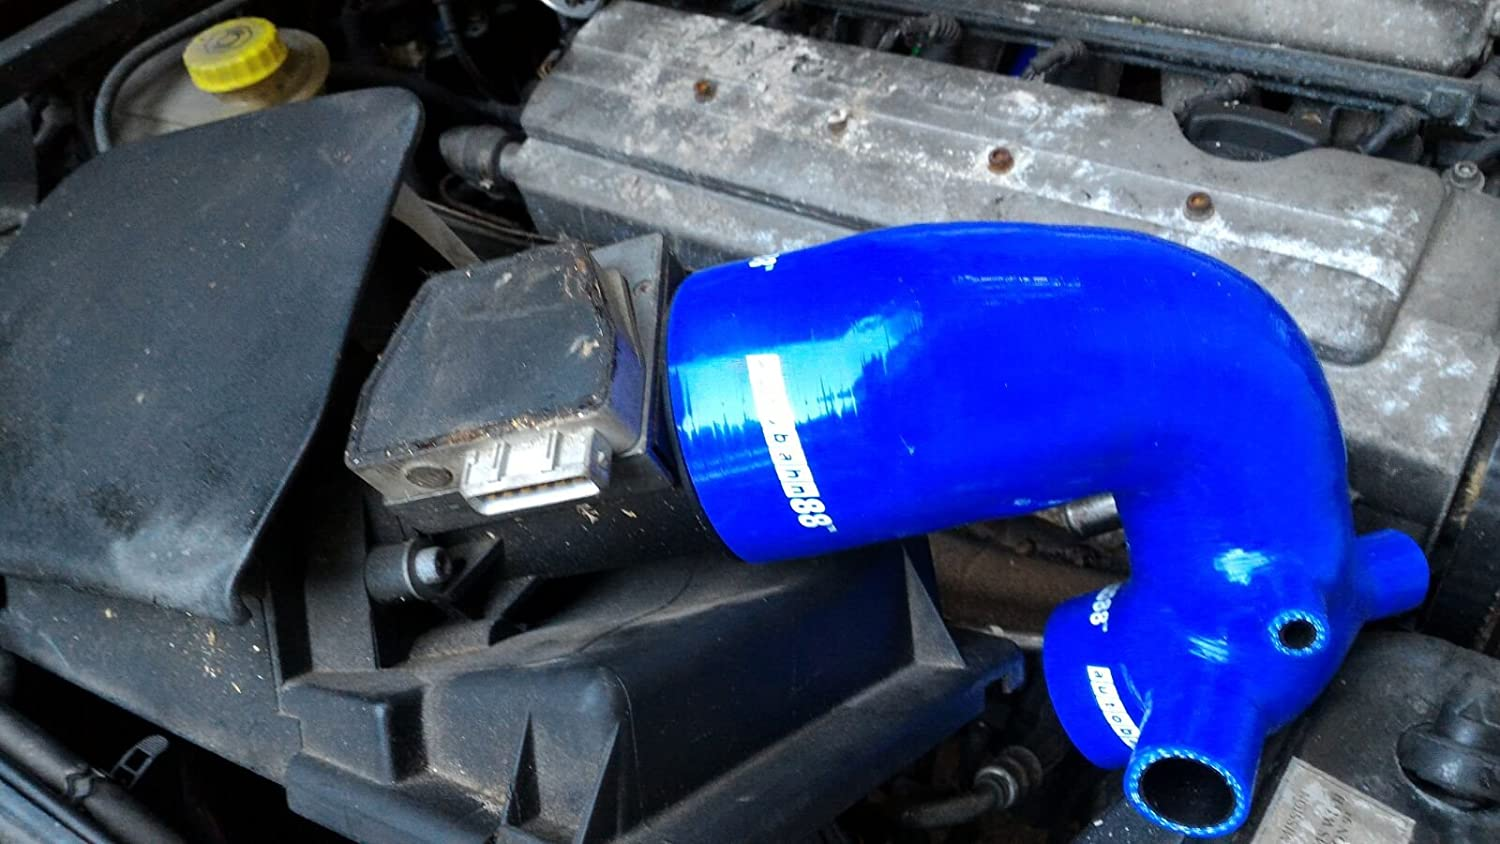 Autobahn88 Air Intake Silicone Hose Kit for 1998-2005 Audi TT 180ps S3 Quattro AJQ AUQ ARY APP AWP Blue -without Clamp Set